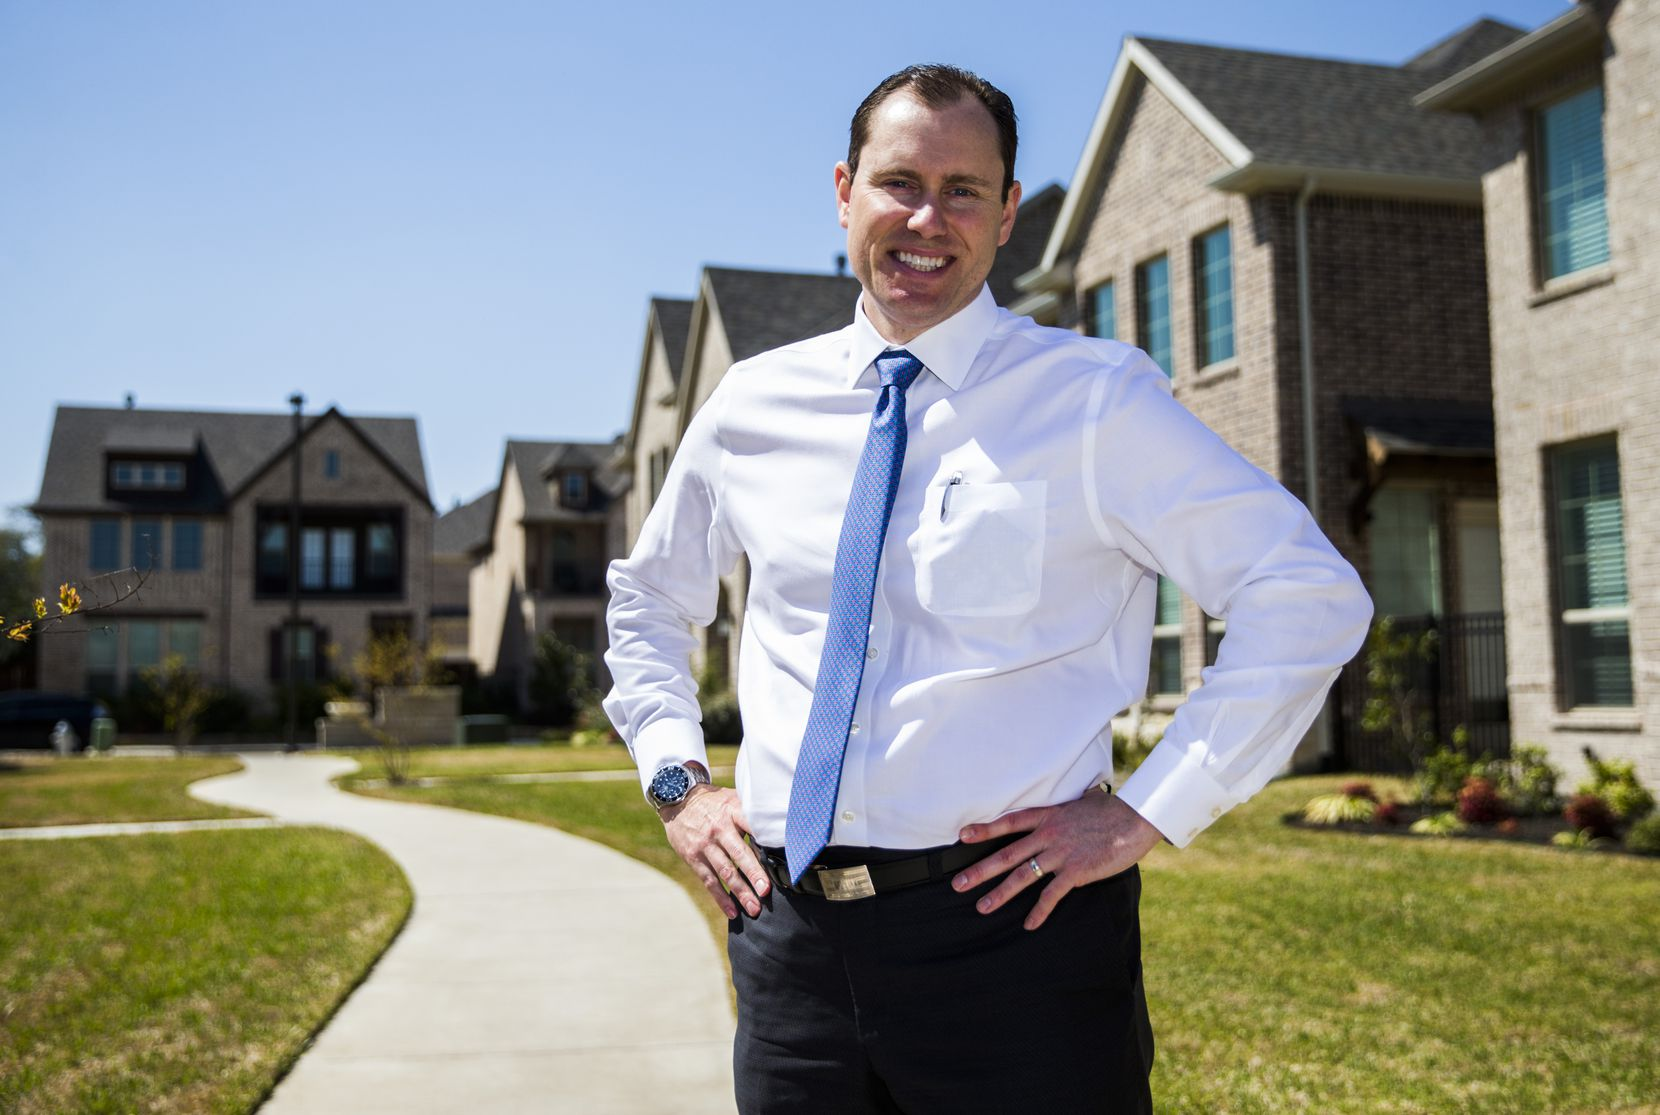 Ben Brewer, managing director of real estate firm Hines, said new homes sold in less than a year in the Delaware at Heritage Crossing development in old central Irving.